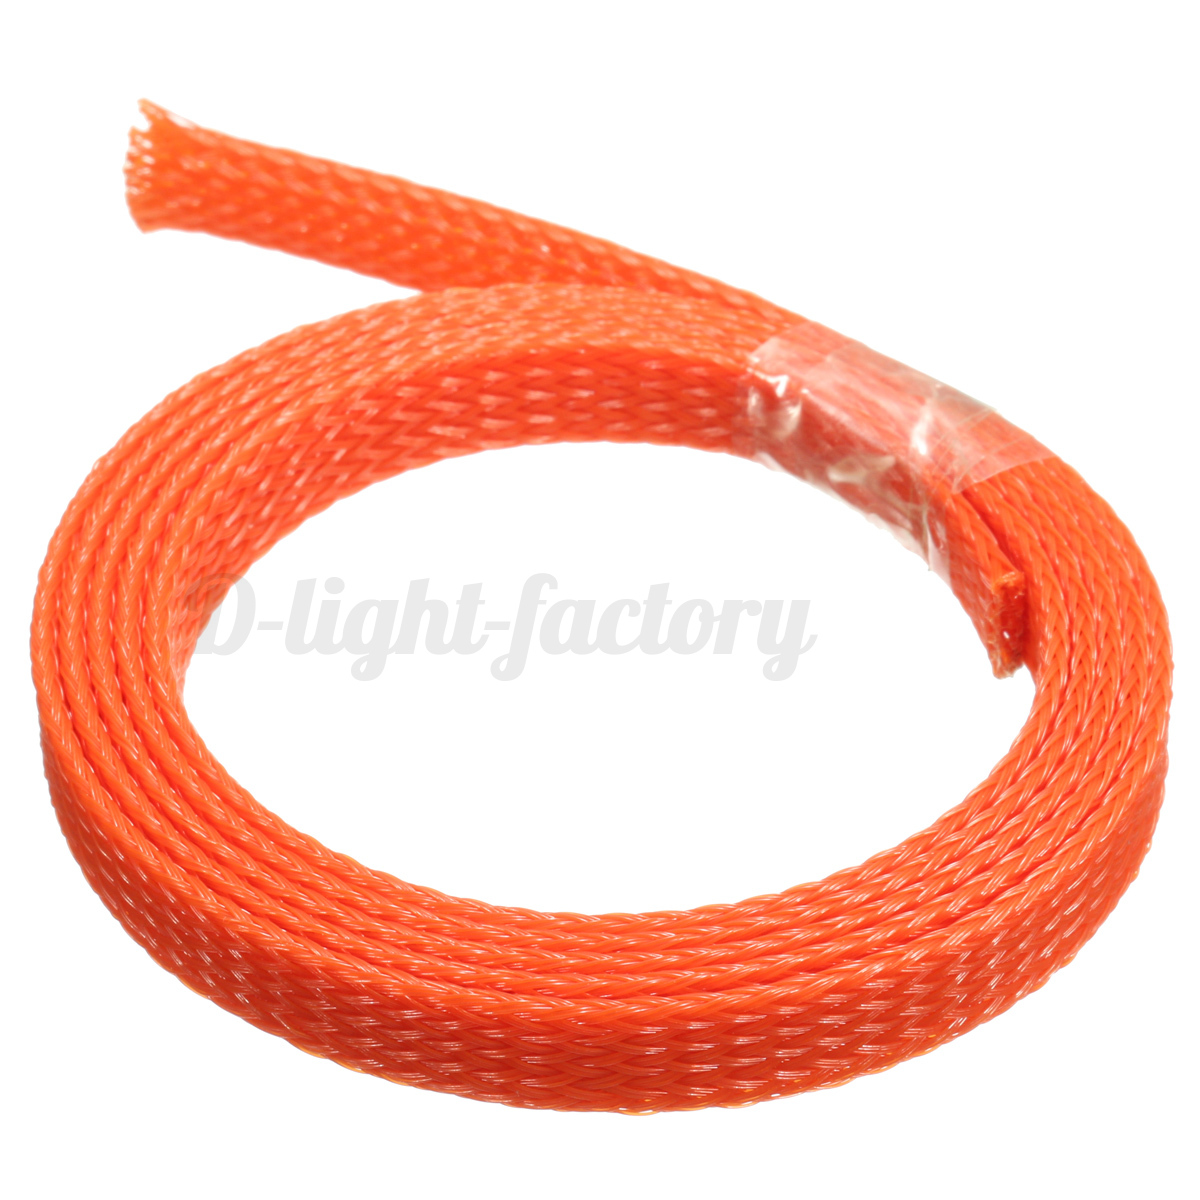 wire harness mesh 1pcs 1m 8mm braided wire tidy mesh expandable sleeving ...